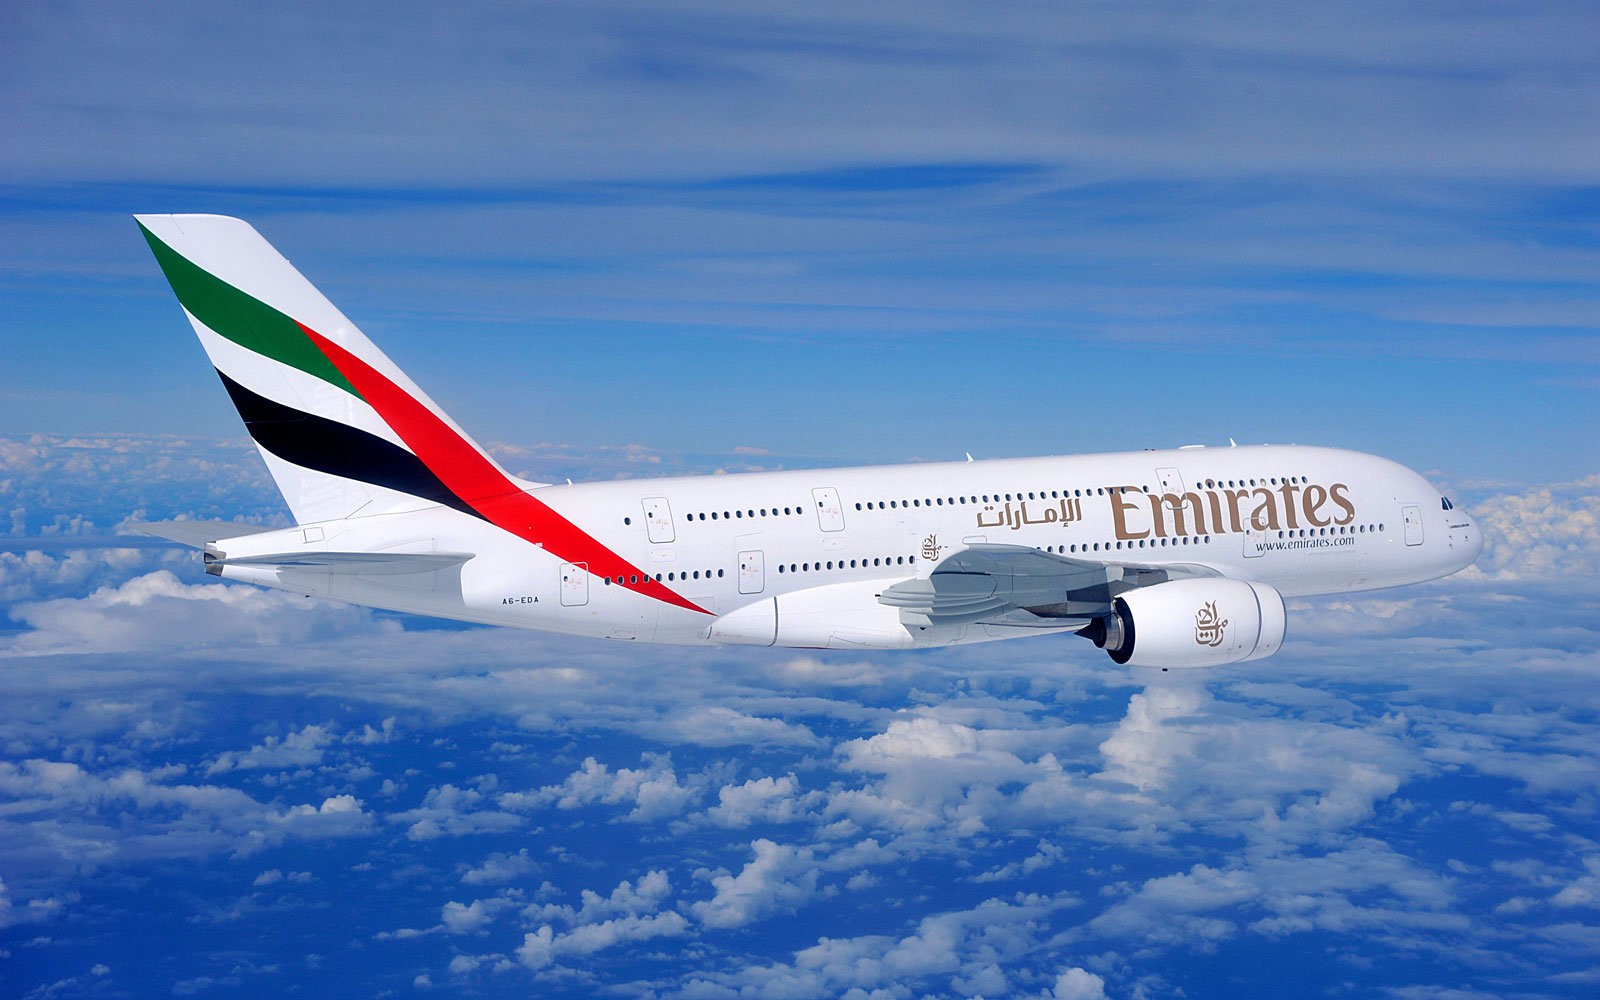 Emirates A380 plane photo